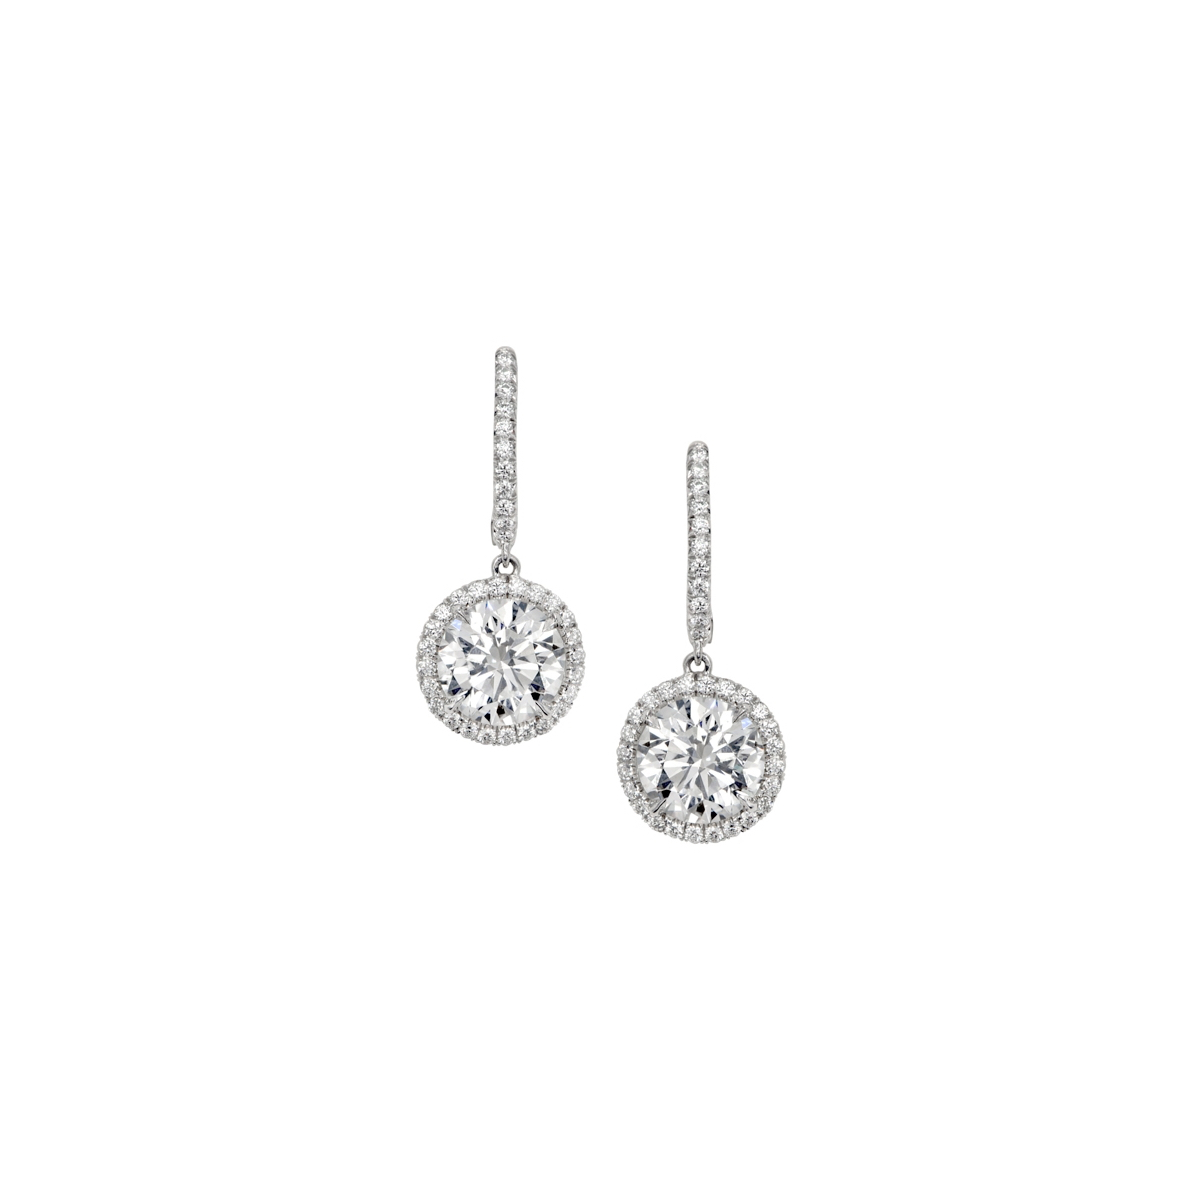 1 28 Carat Diamond Halo Drop Earrings